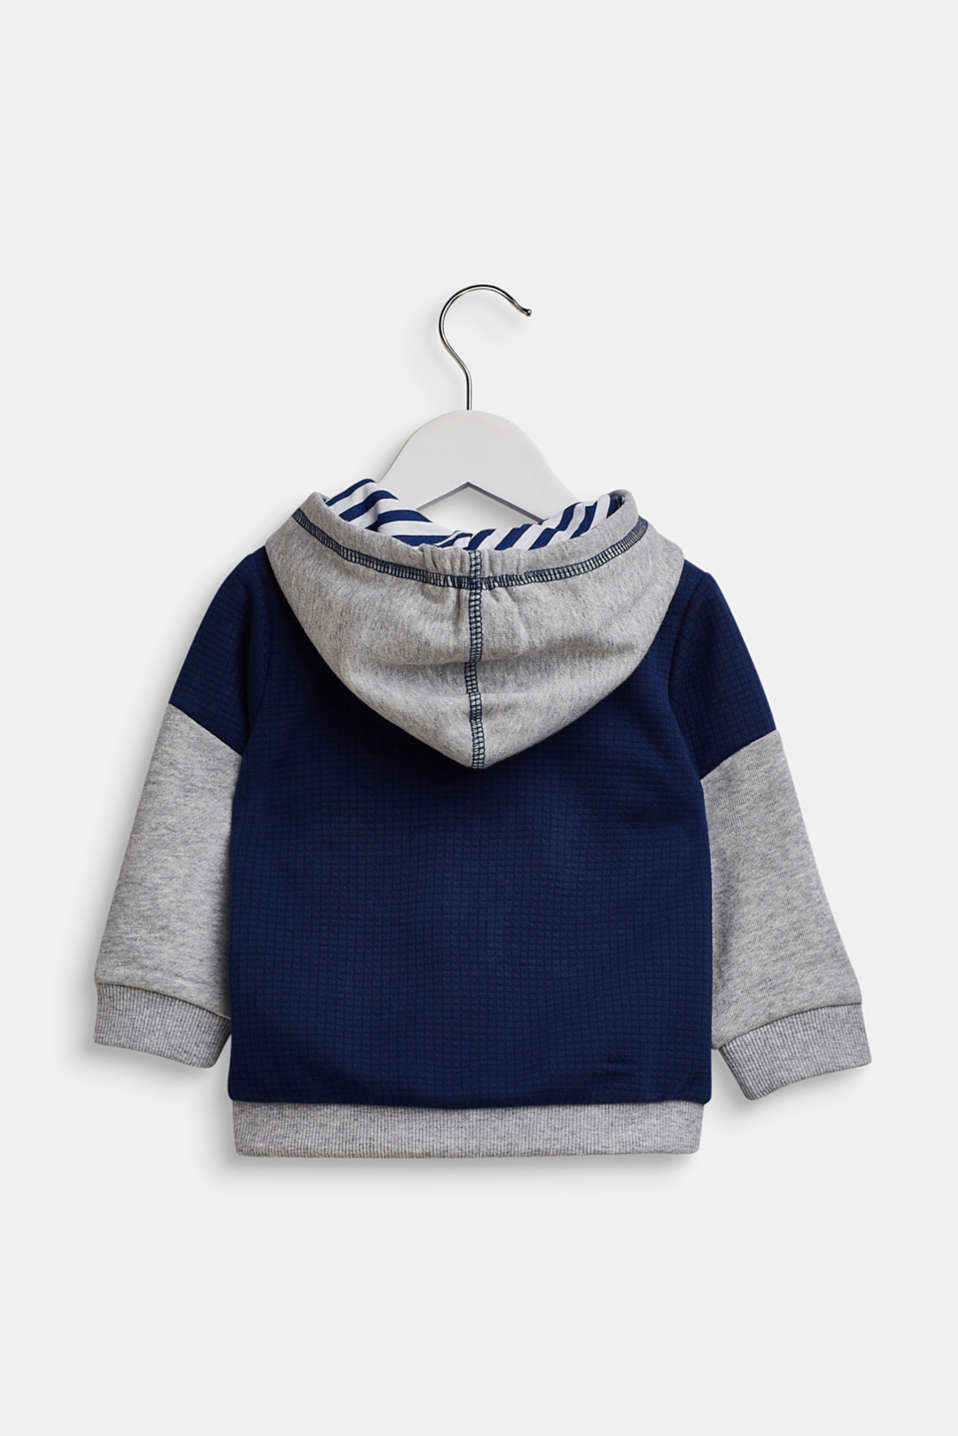 Mixed material sweatshirt cardigan, LCMARINE BLUE, detail image number 1